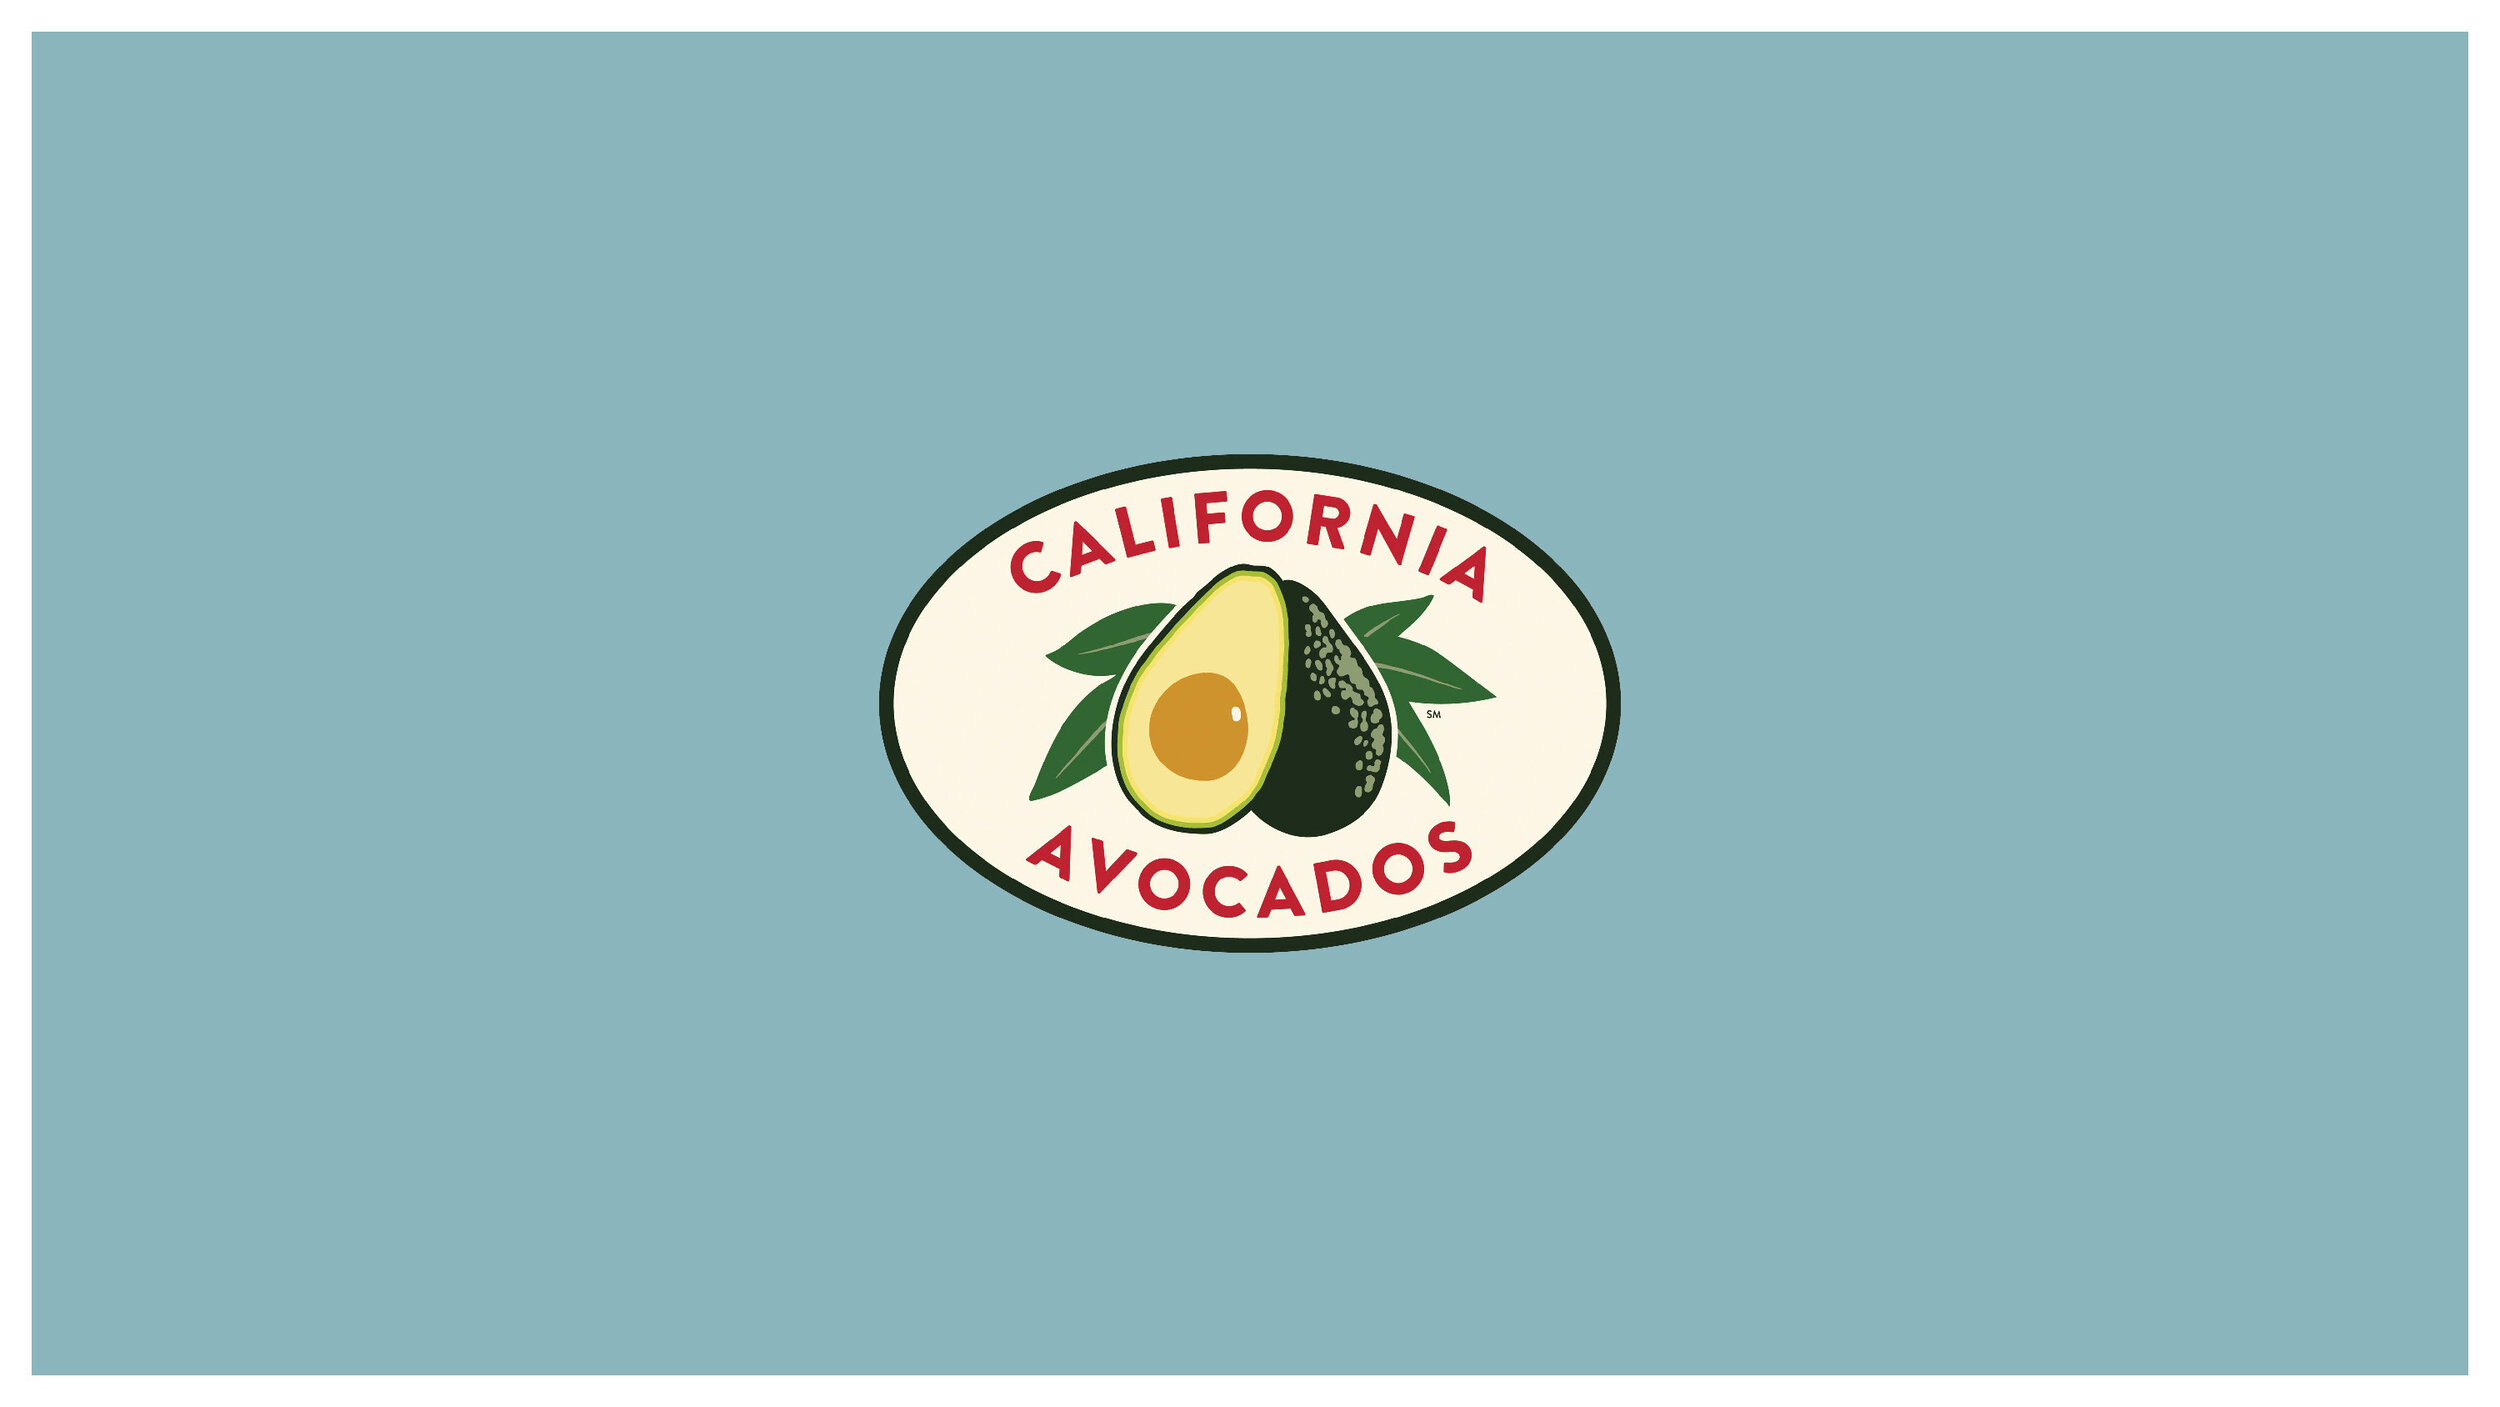 California Avocado Commission_Treatment (1) (1)_Page_19.jpg